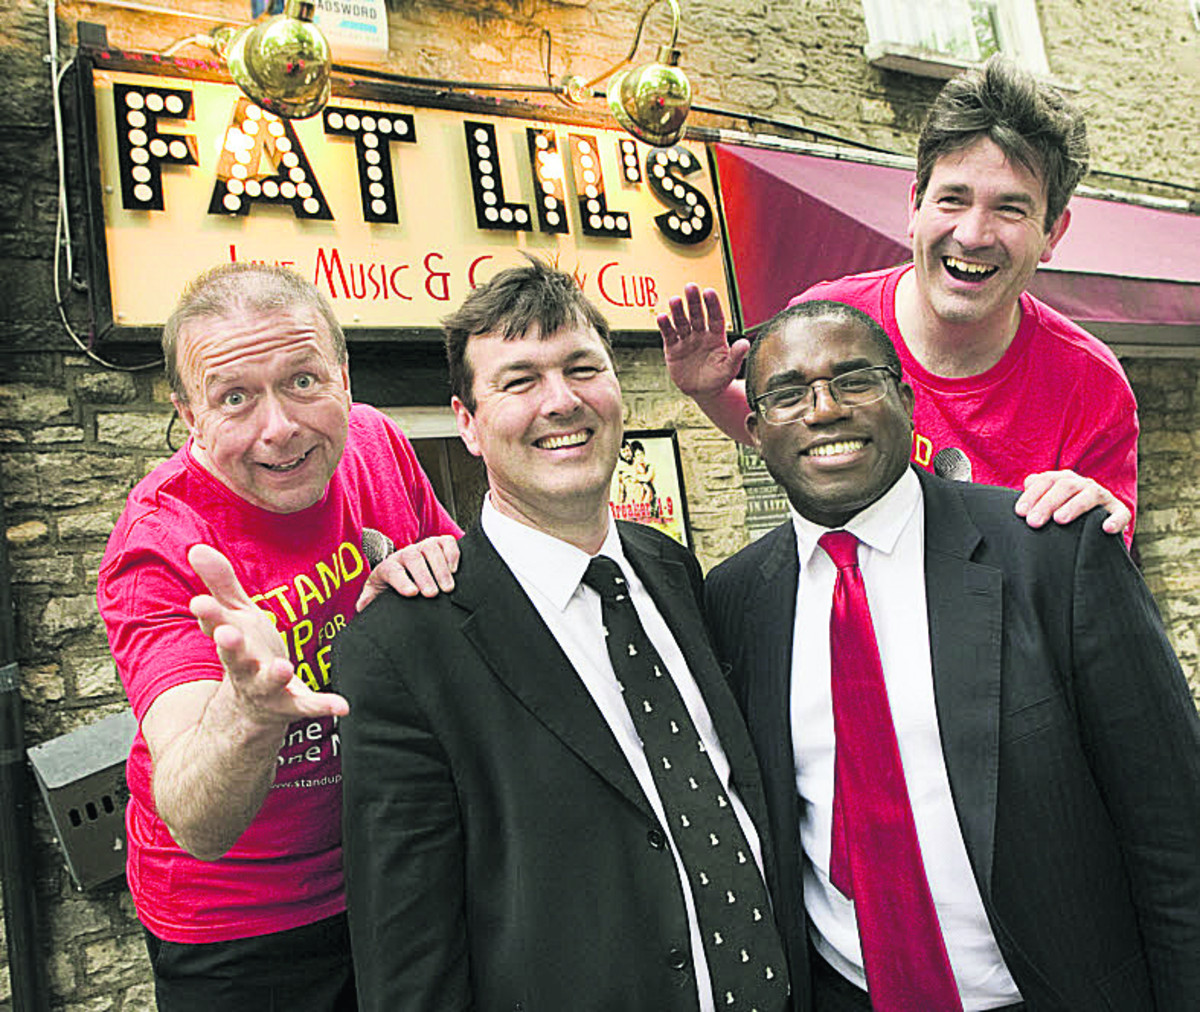 From left, comedian Steve Gribbin, Duncan Enright, David Lammy MP and comedian Crispin Flintoff